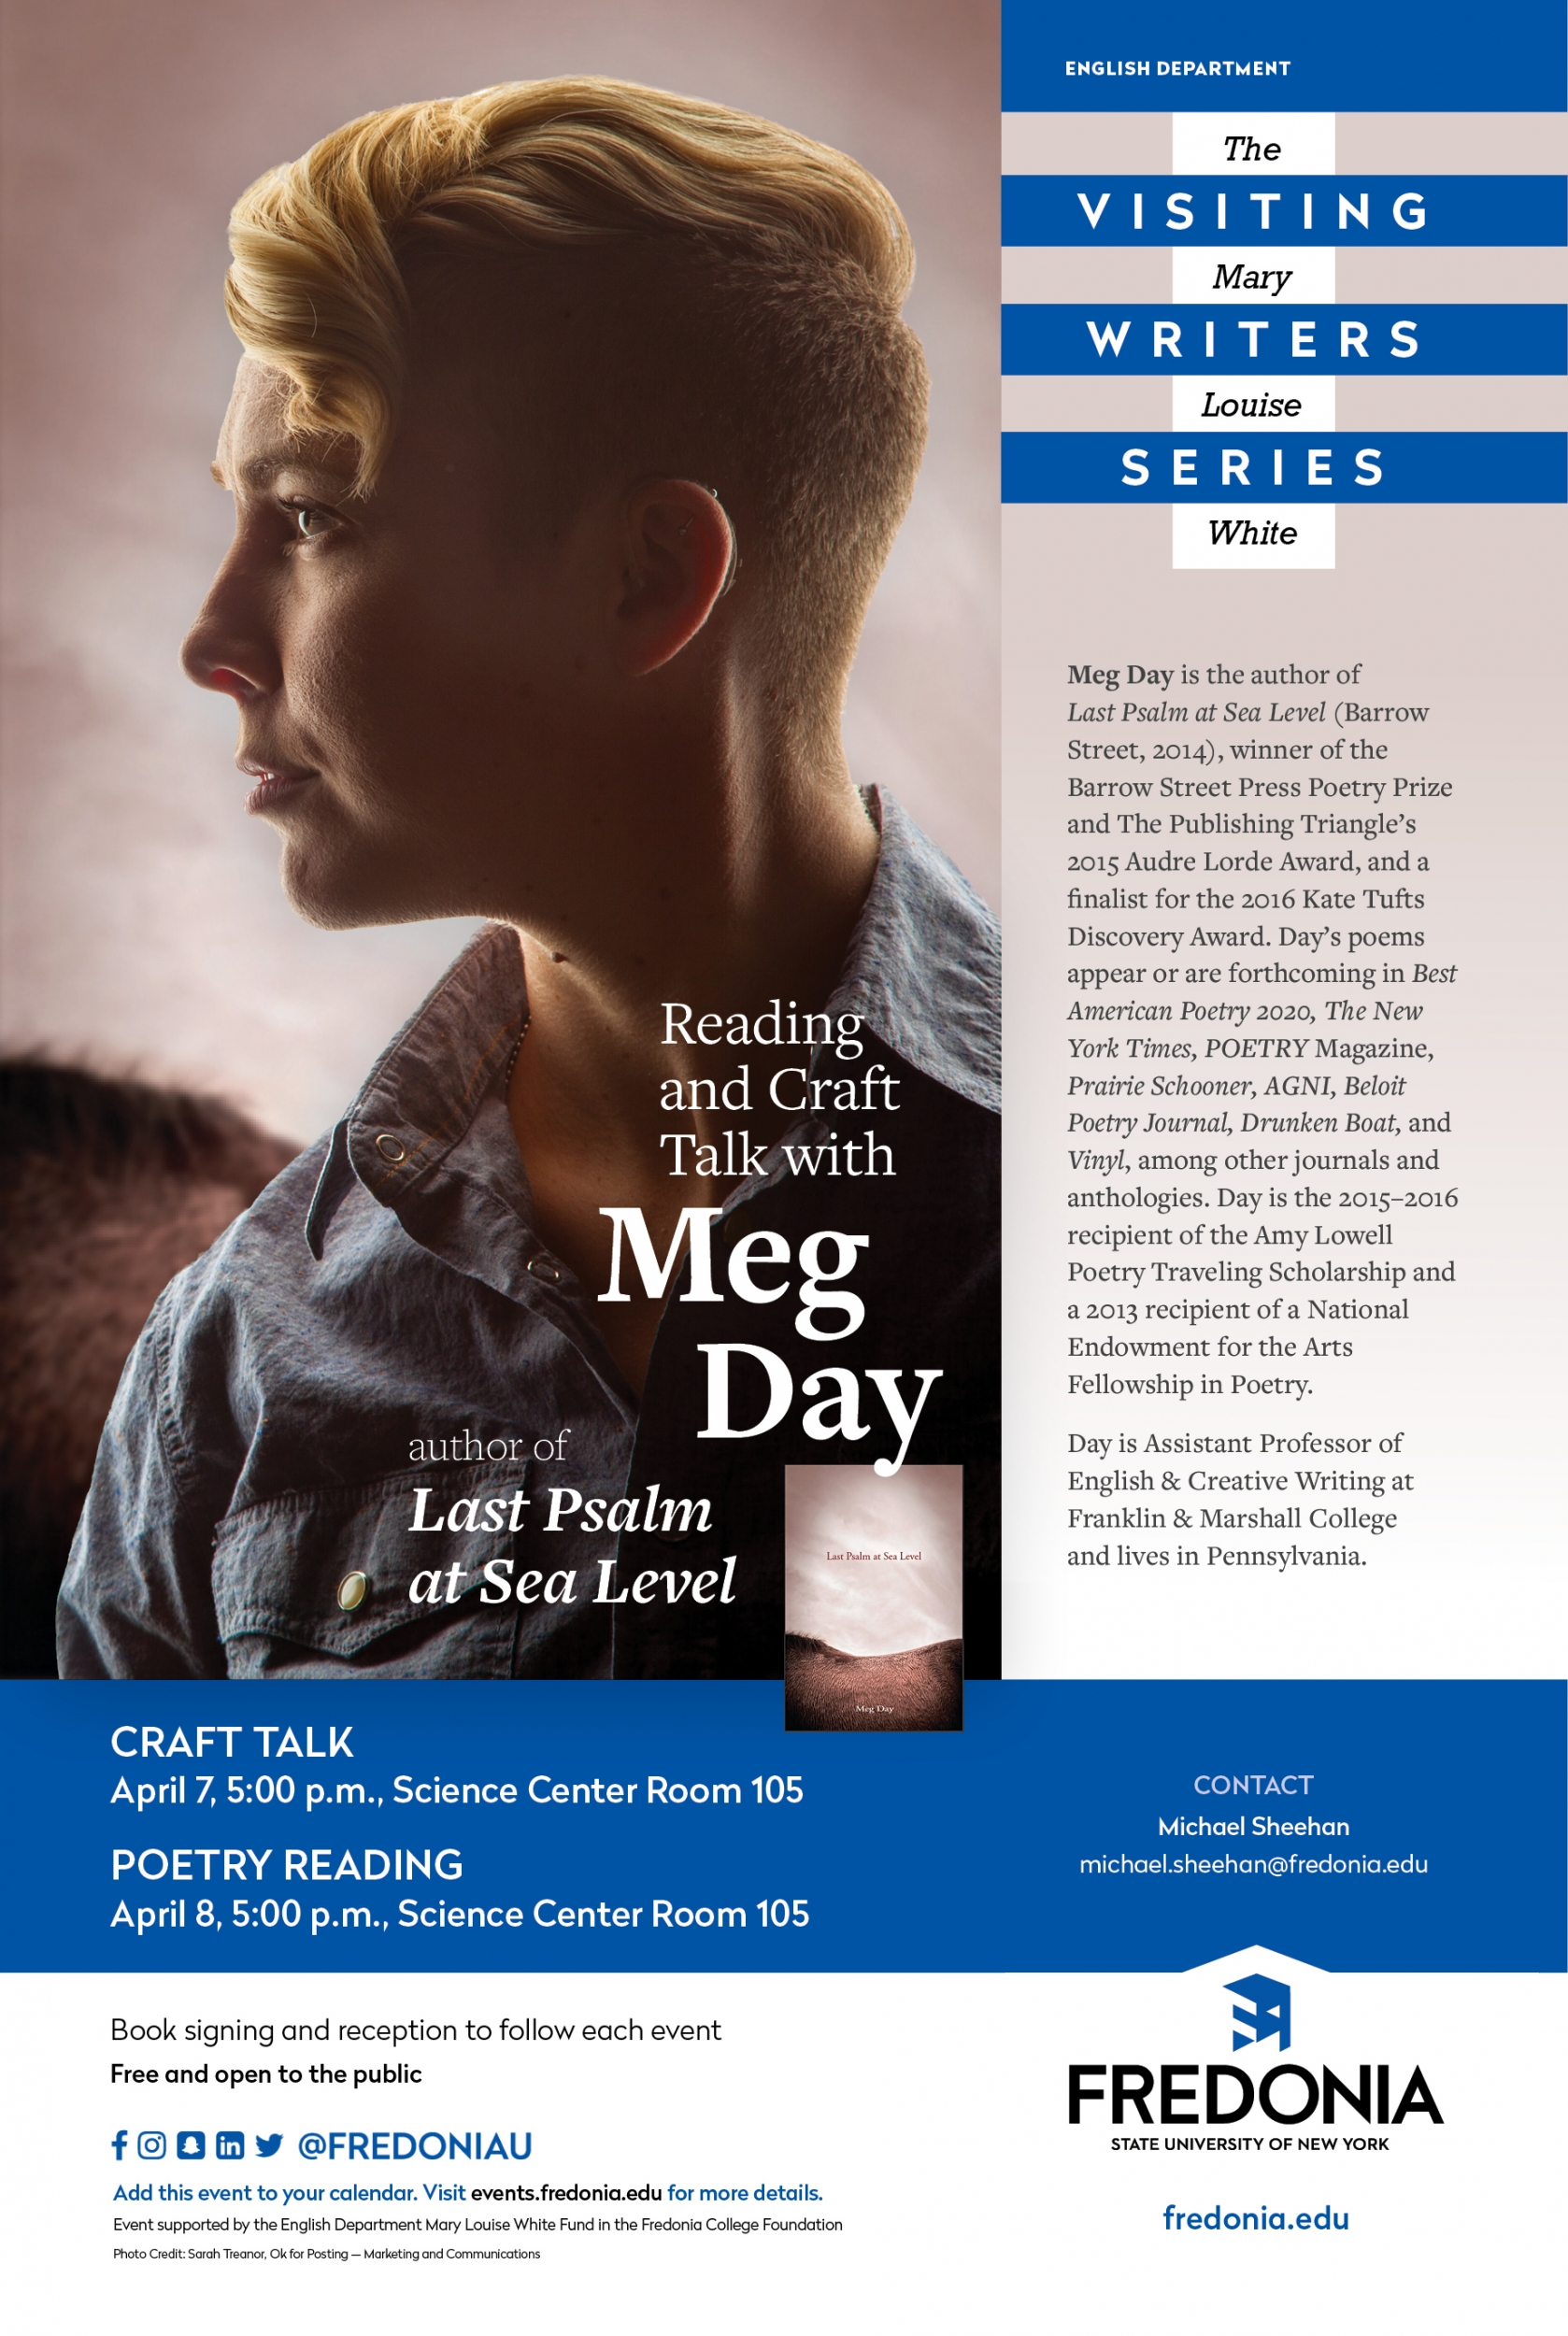 Meg Day, Mary Louise White Visiting Writers Series, April 2020